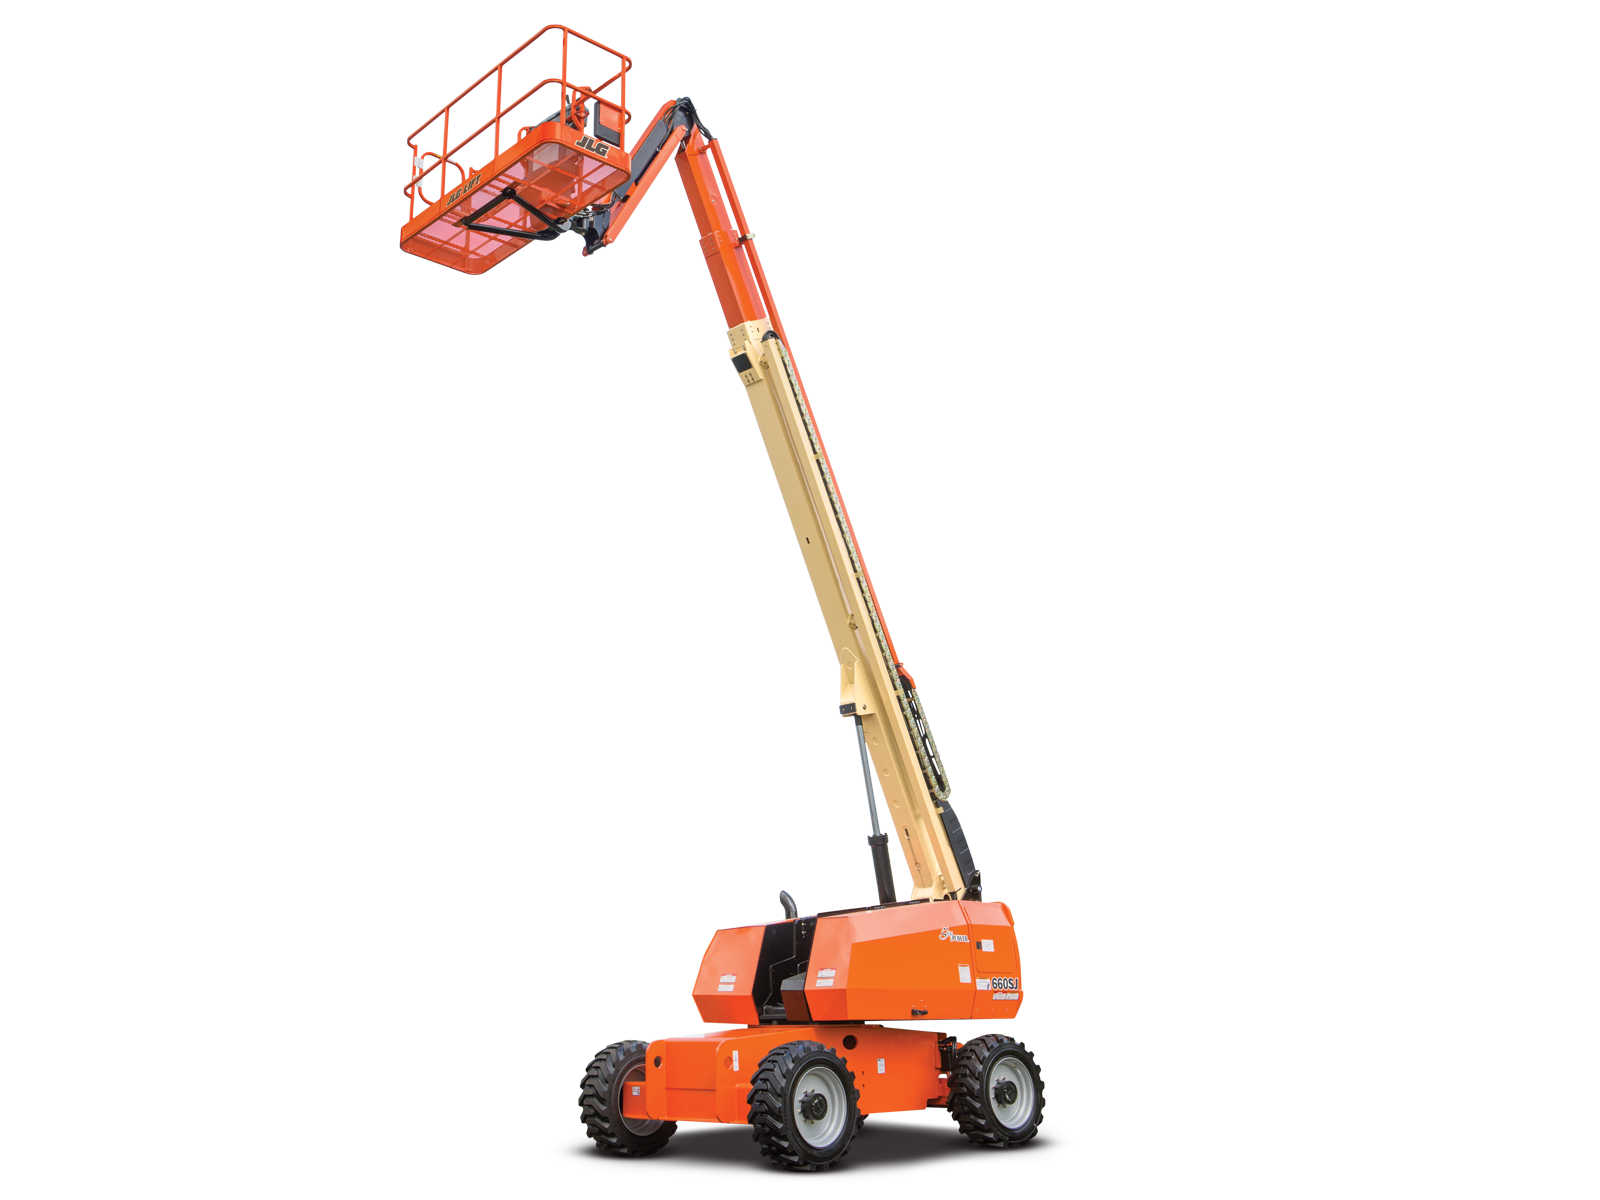 Wire Diagram For The Engine In A Jlg Lift 400s 46 Wiring 660sj Telescopic Boom Gallery Silow100 At